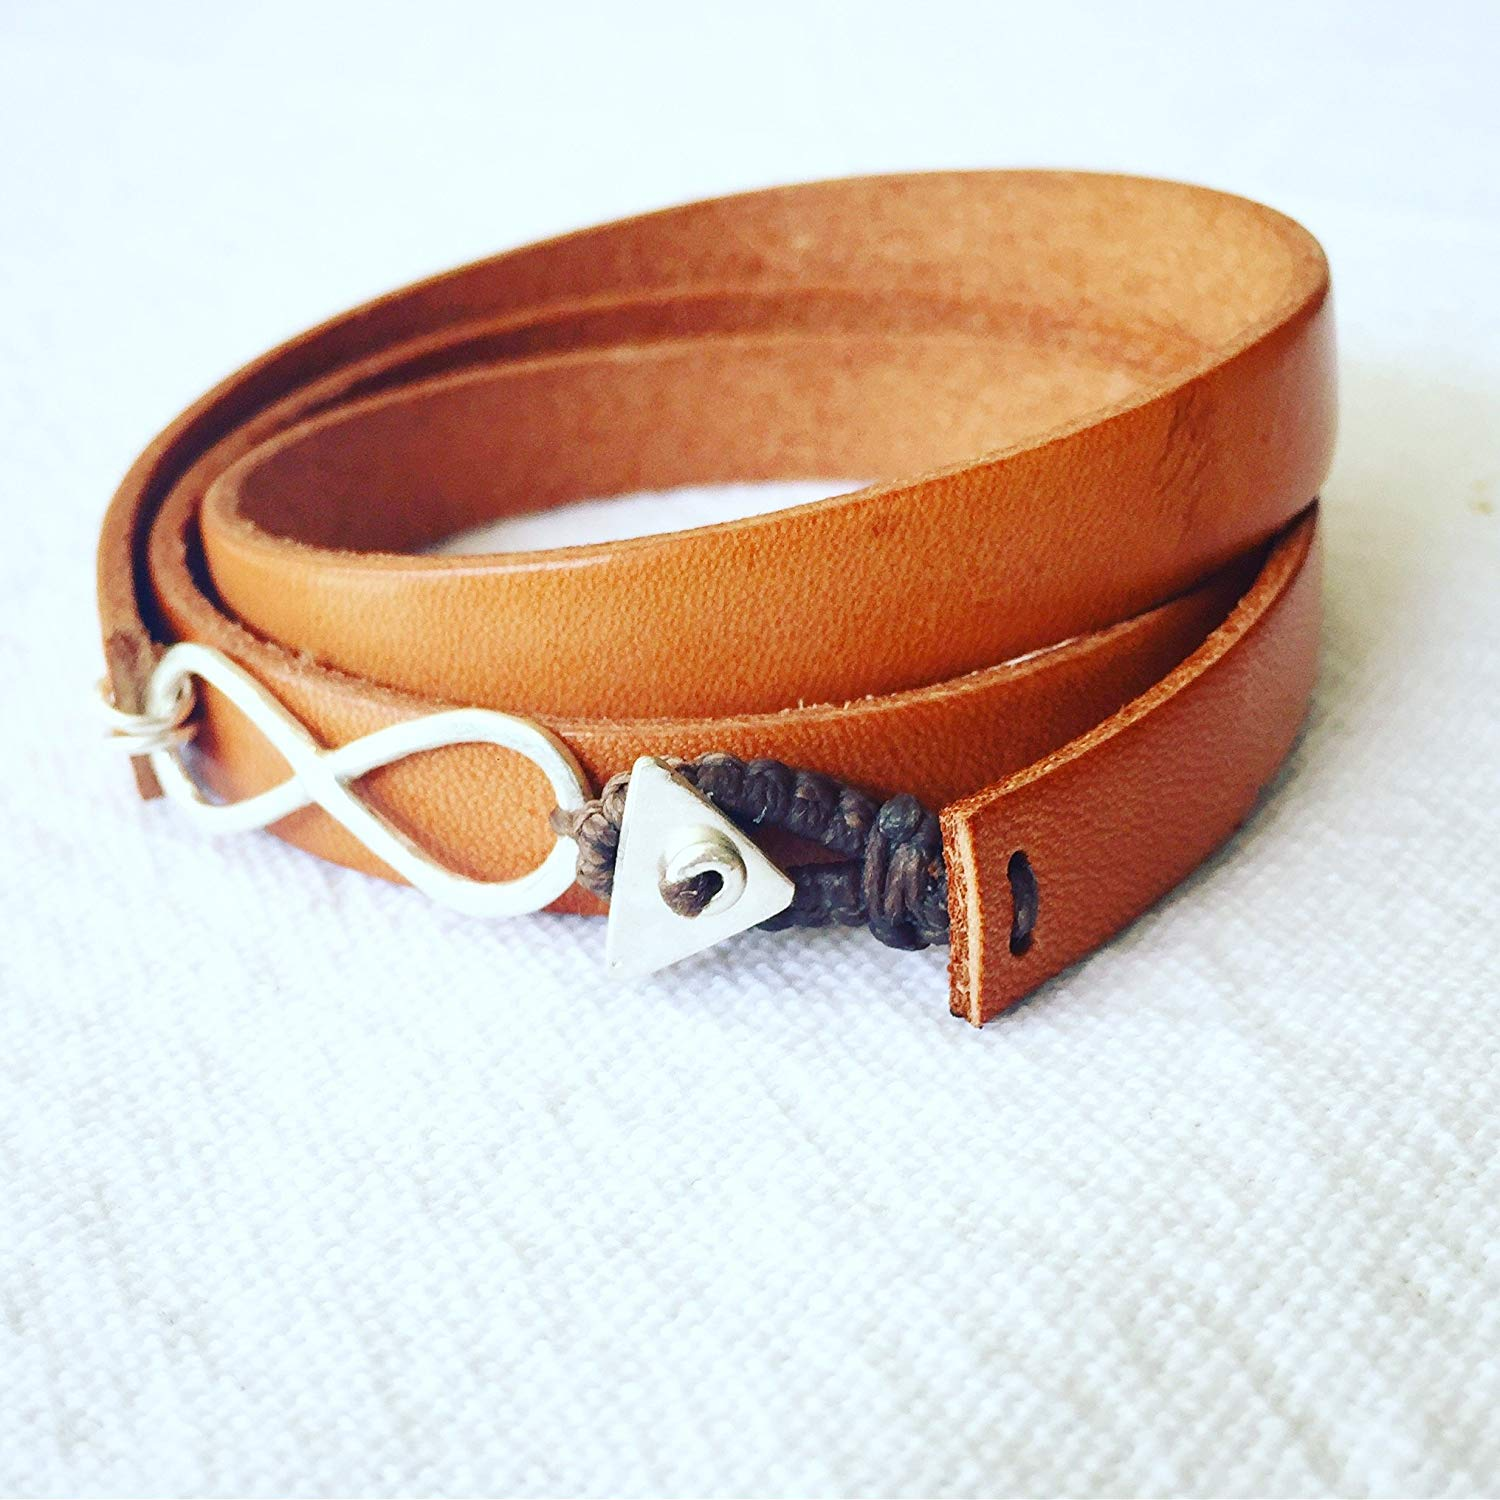 Men's Brown Leather and Sterling Silver Wrapped Infinity Charm Bracelet, Handmade Designer Artisan Jewelry